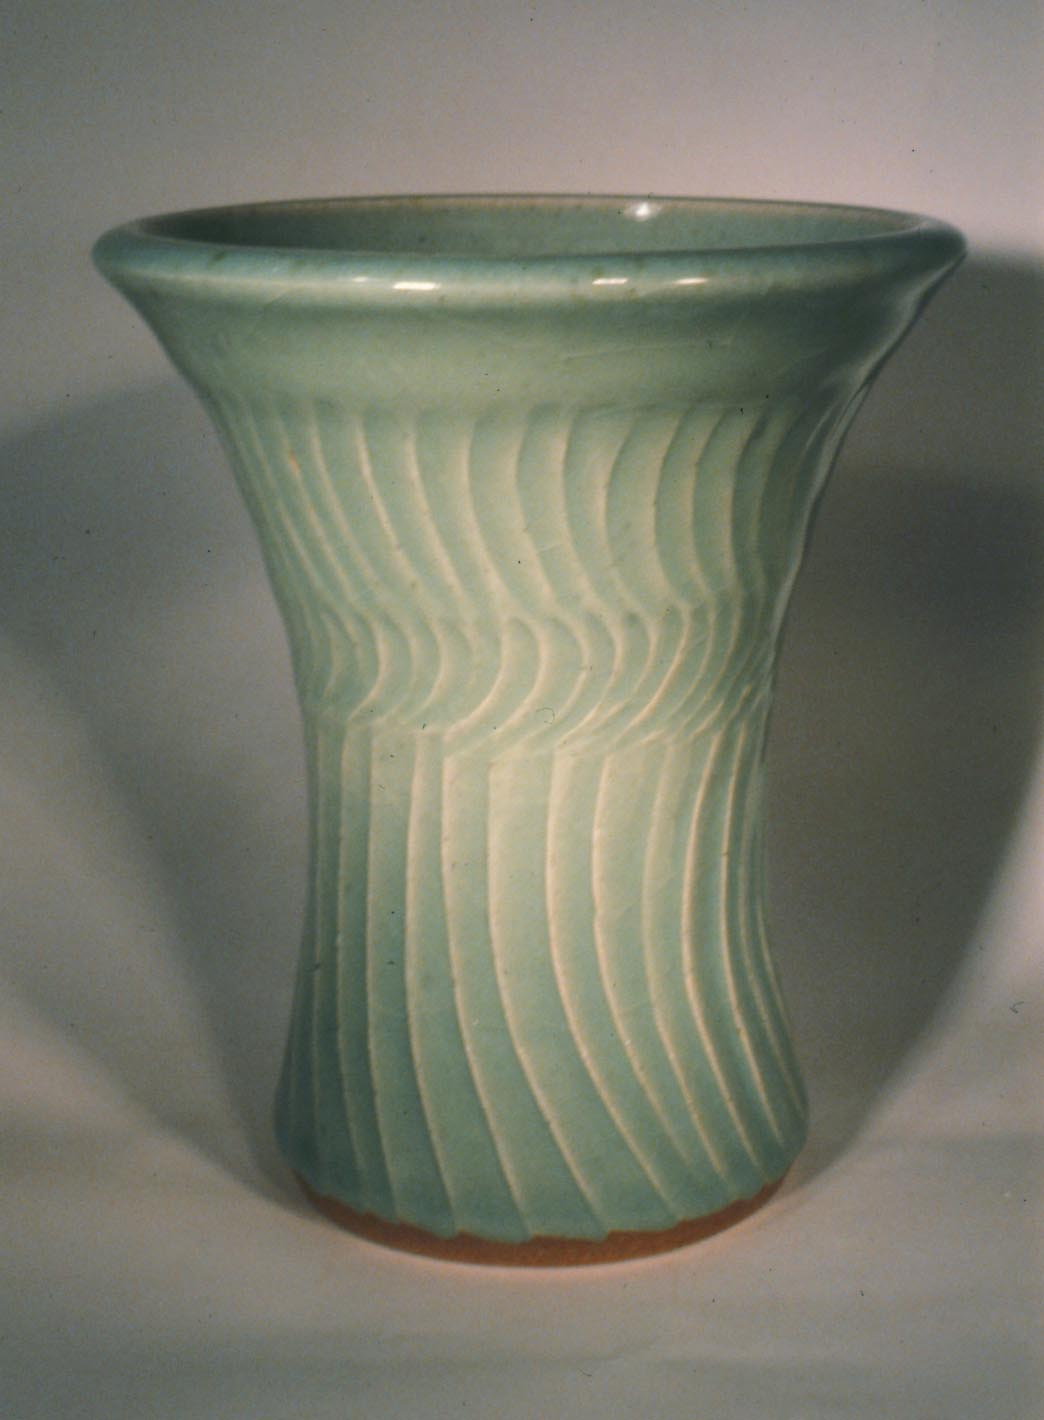 Carved stoneware with iron foot, northern celadon glaze